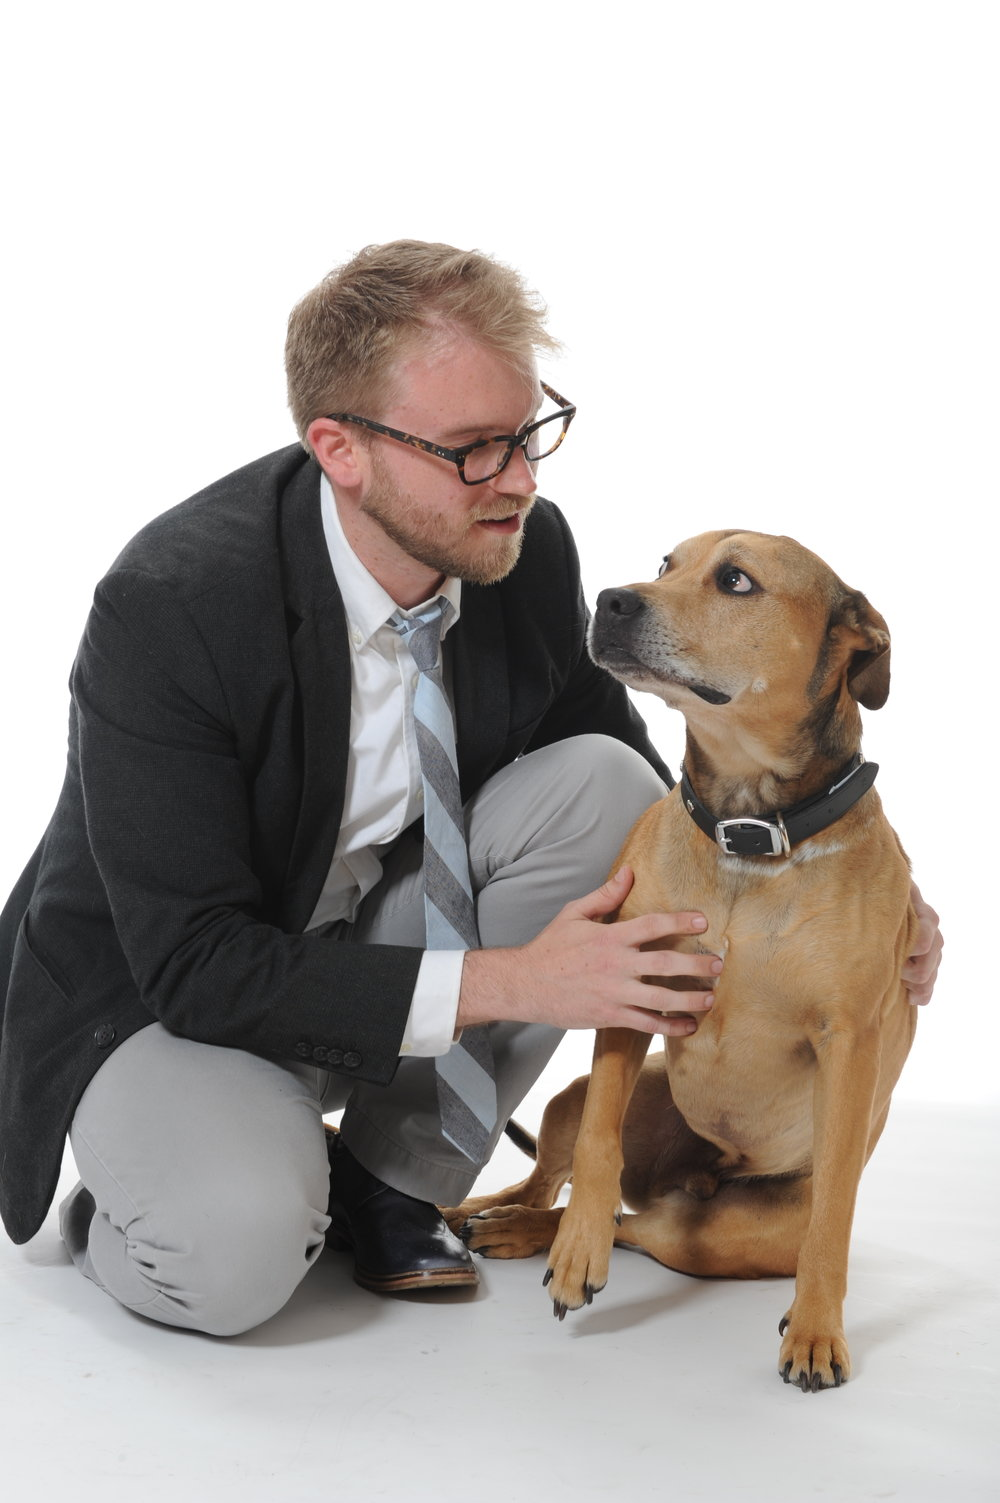 Dan and his dog, Charlie.